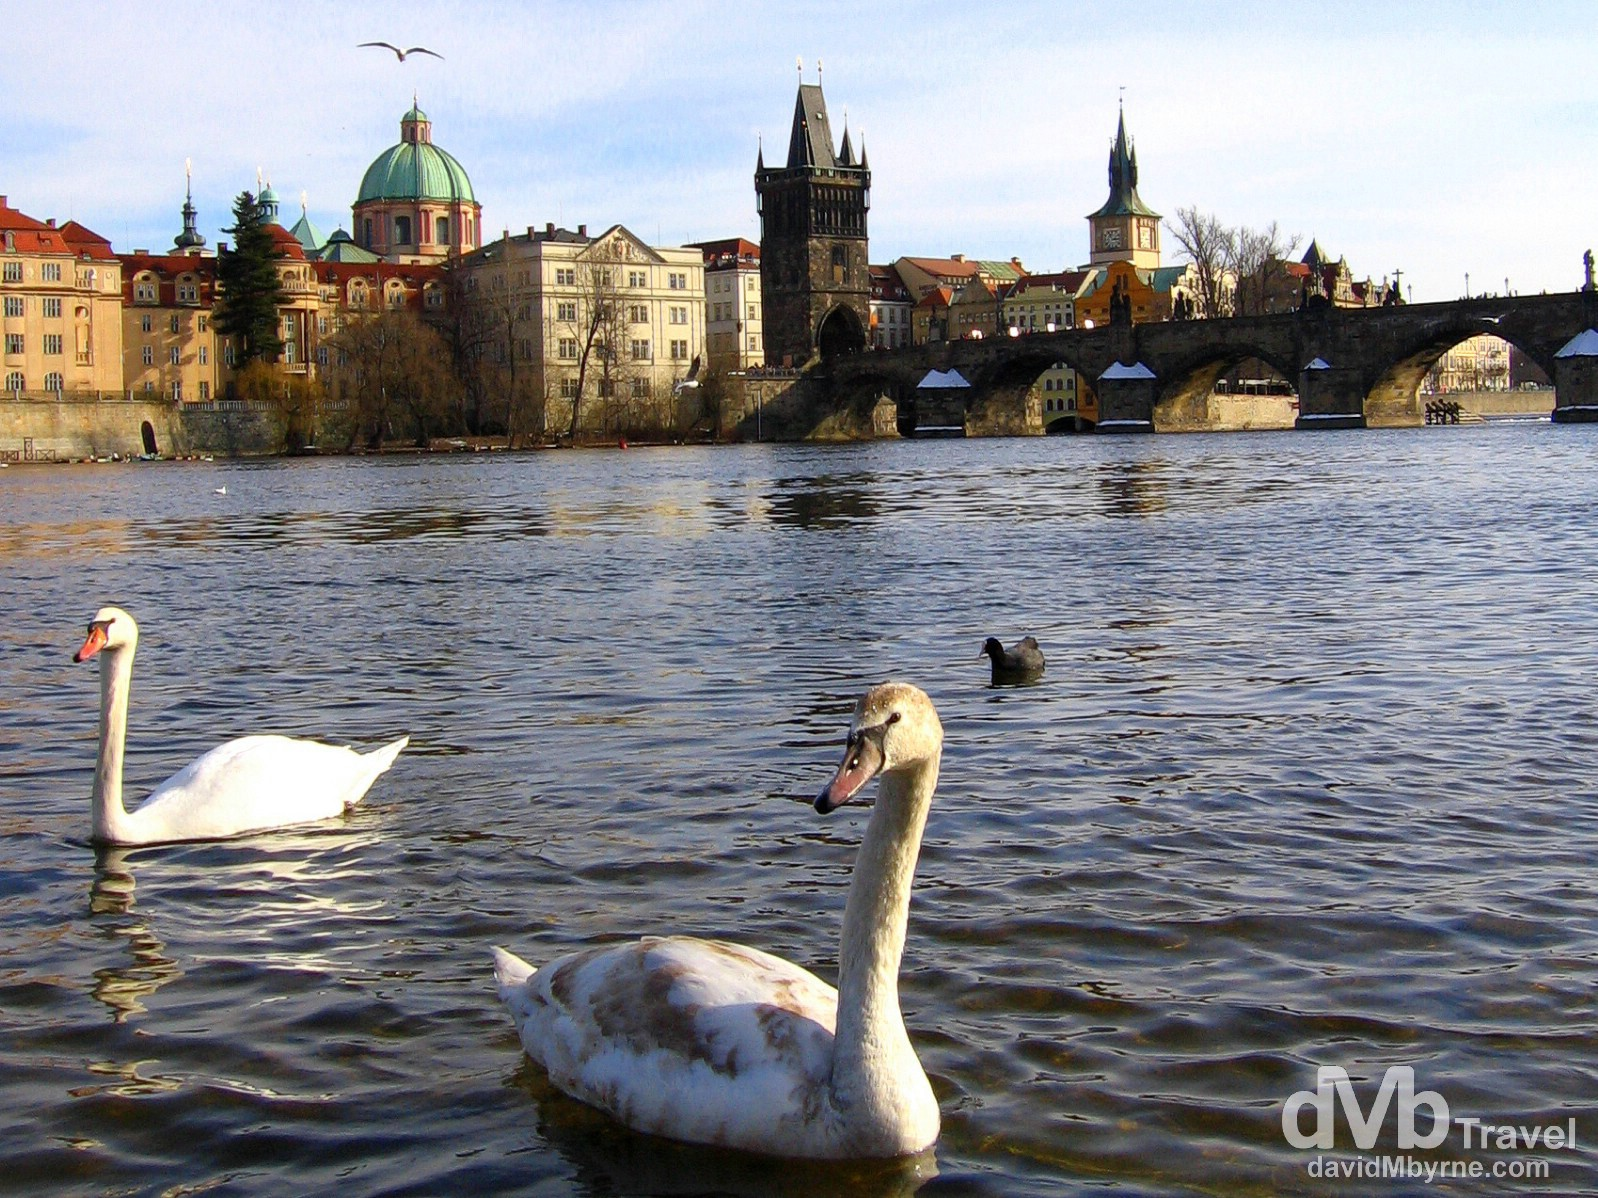 Swans on the west bank of the Vltava River fronting Charles Bridge in Prague, Czech Republic. March 8, 2006.